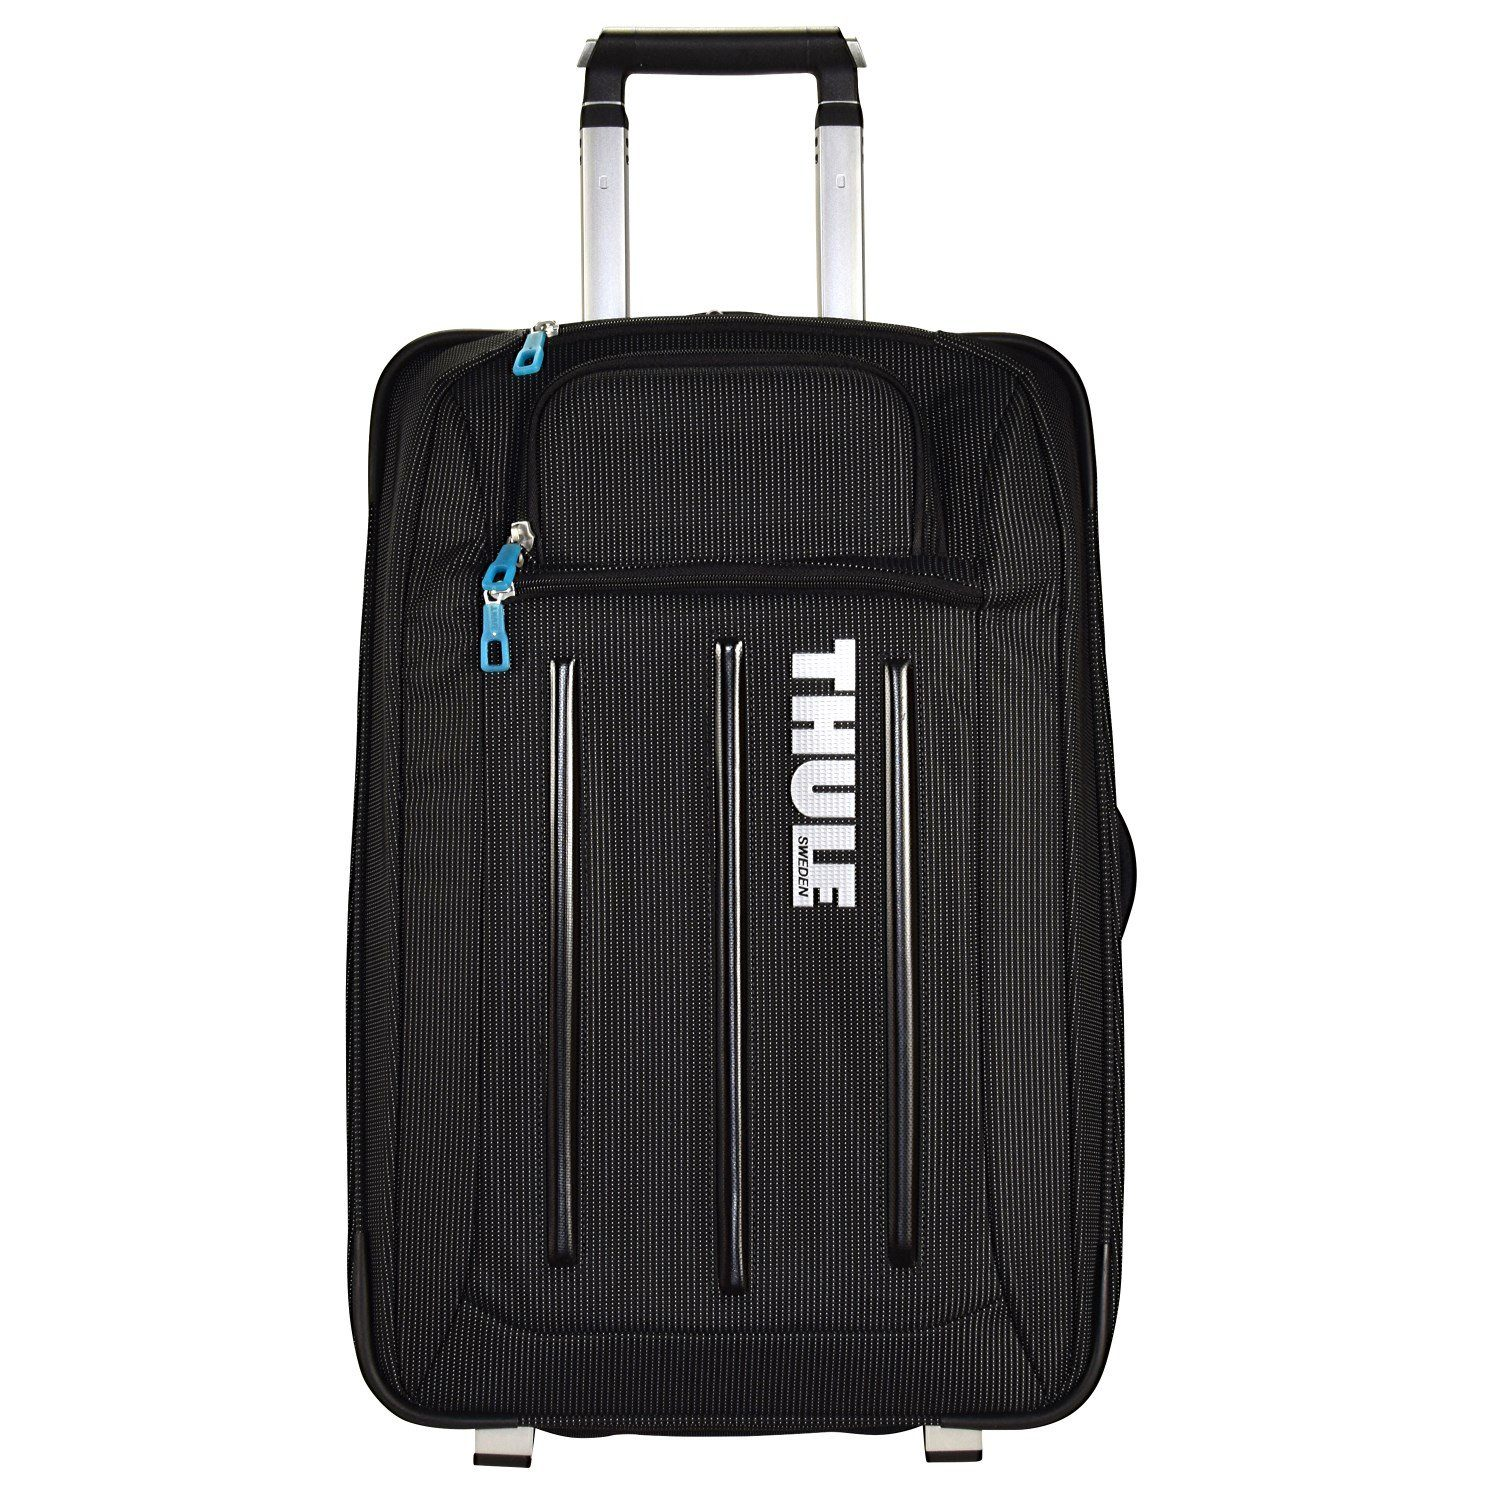 Thule Crossover 2-Rollen Kabinentrolley 56 cm